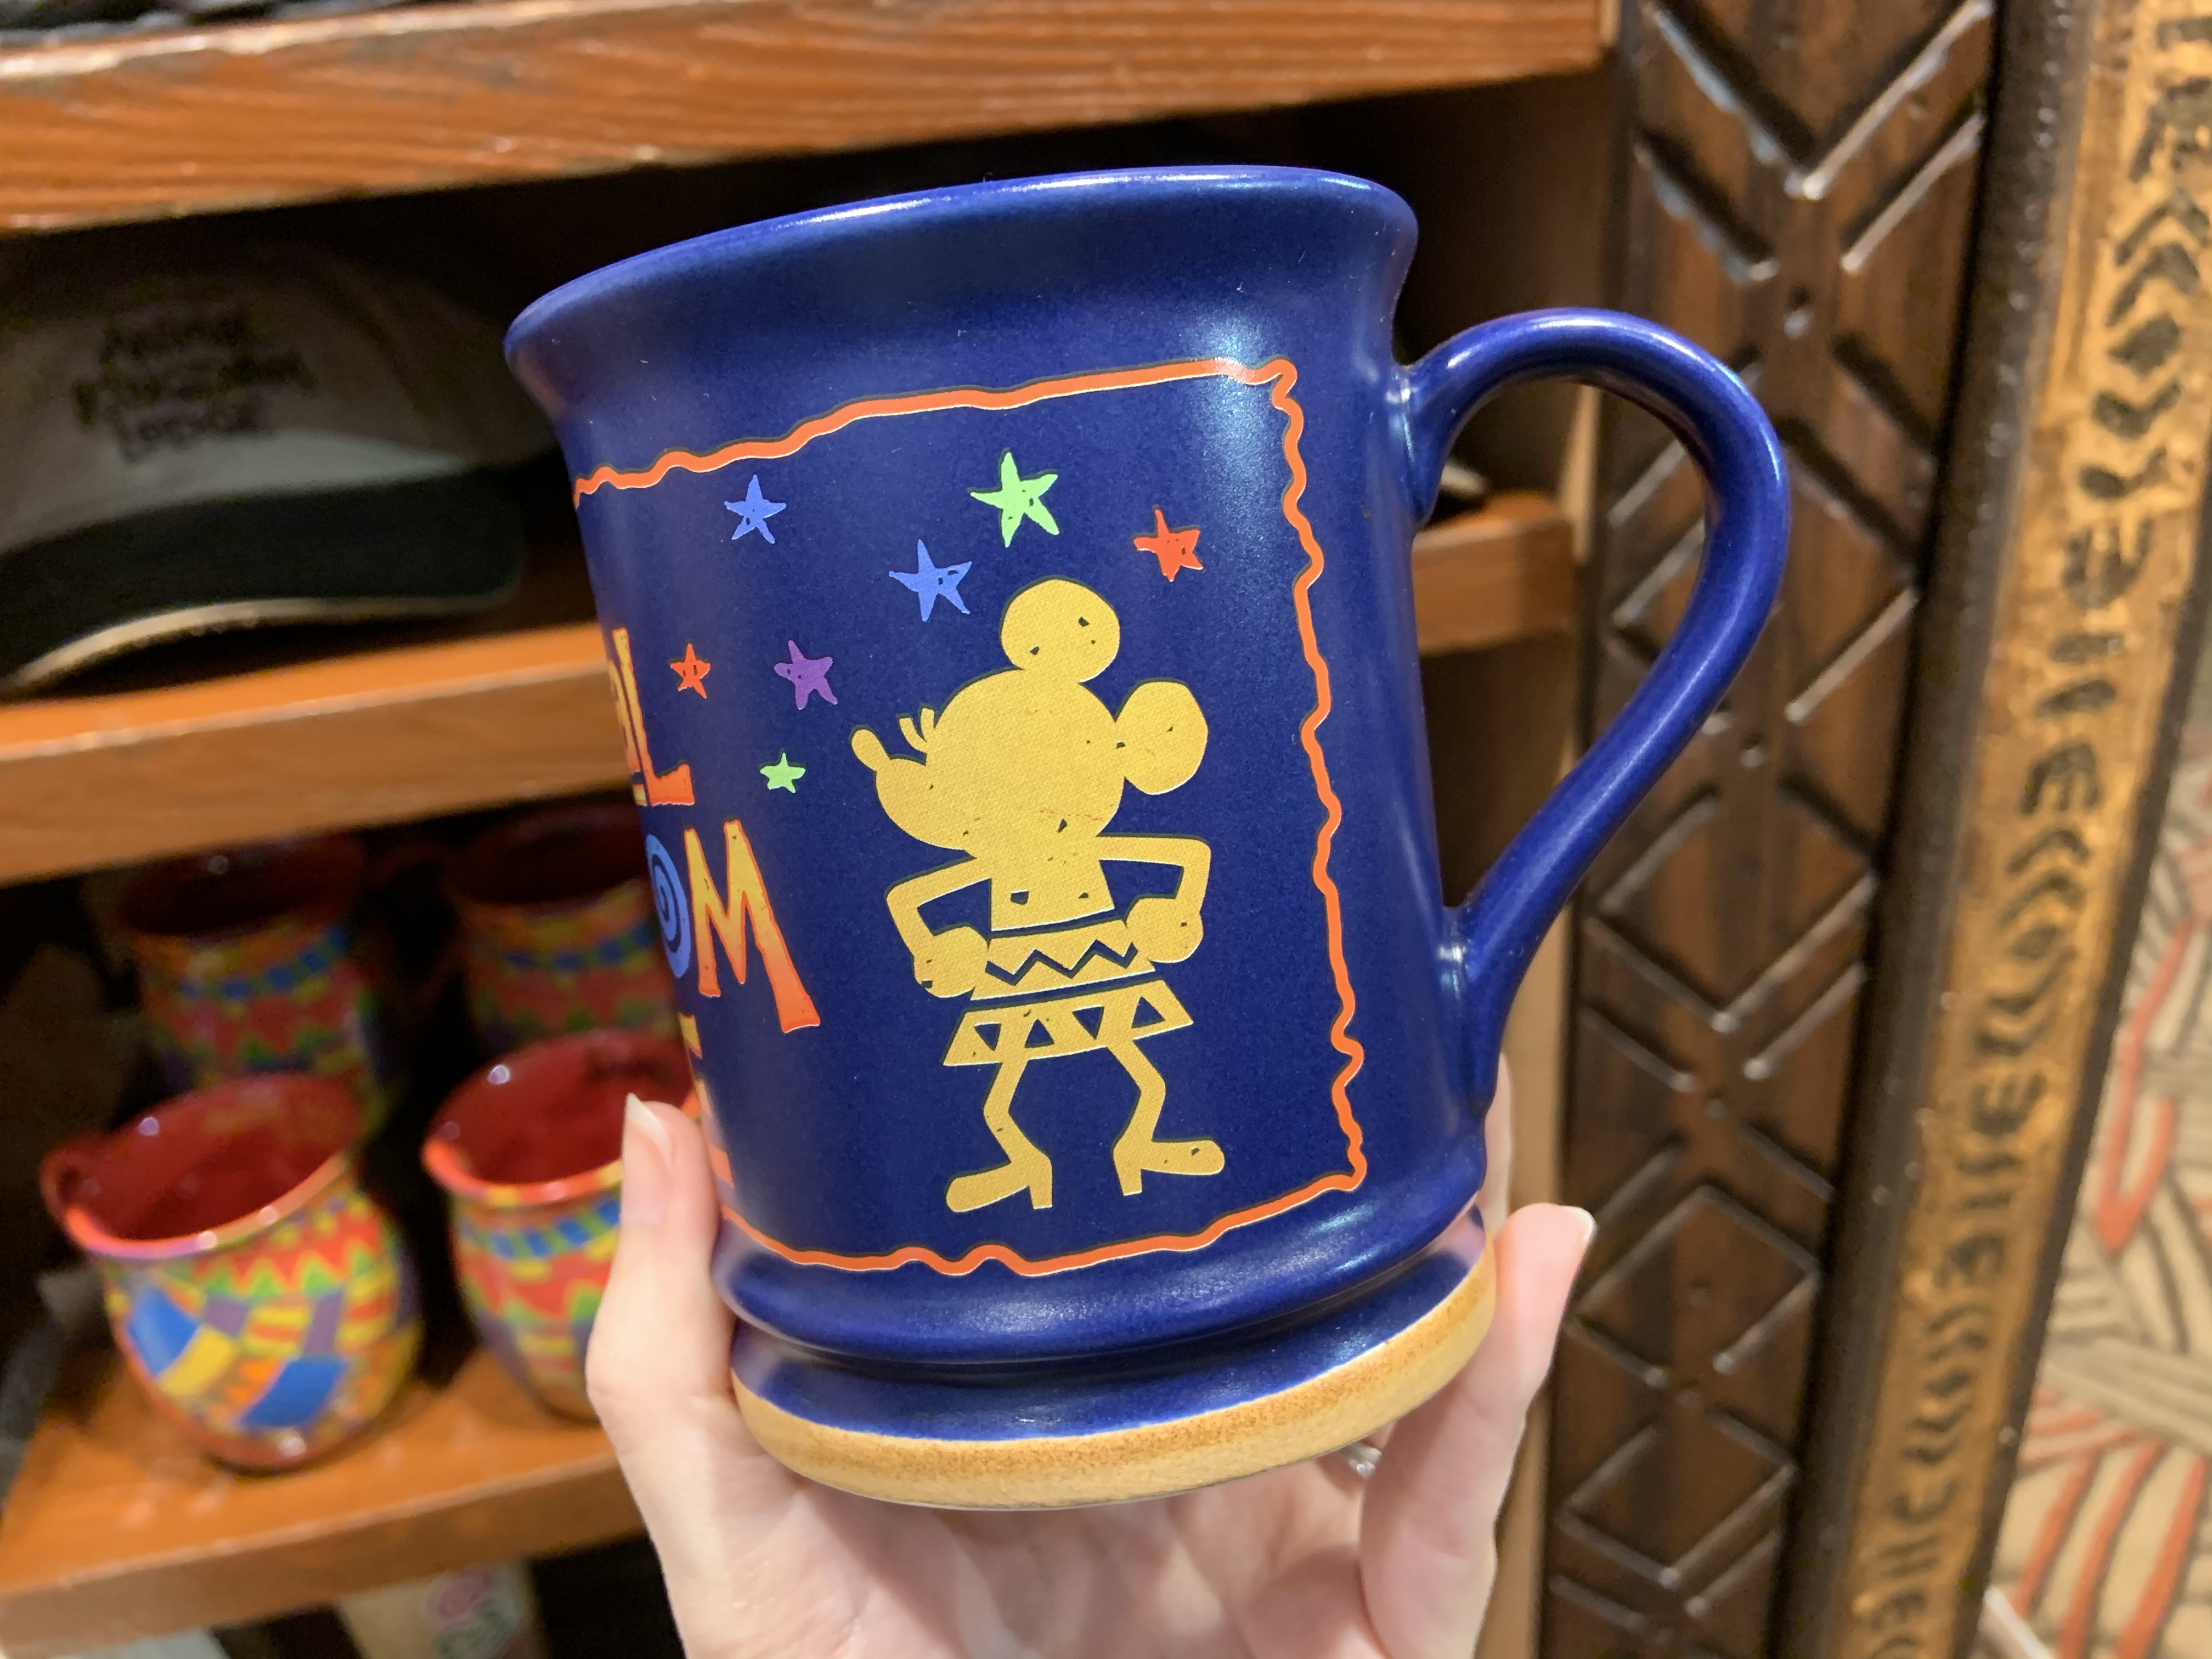 Animal Kingdom Lodge Merchandise 11/25/19 11